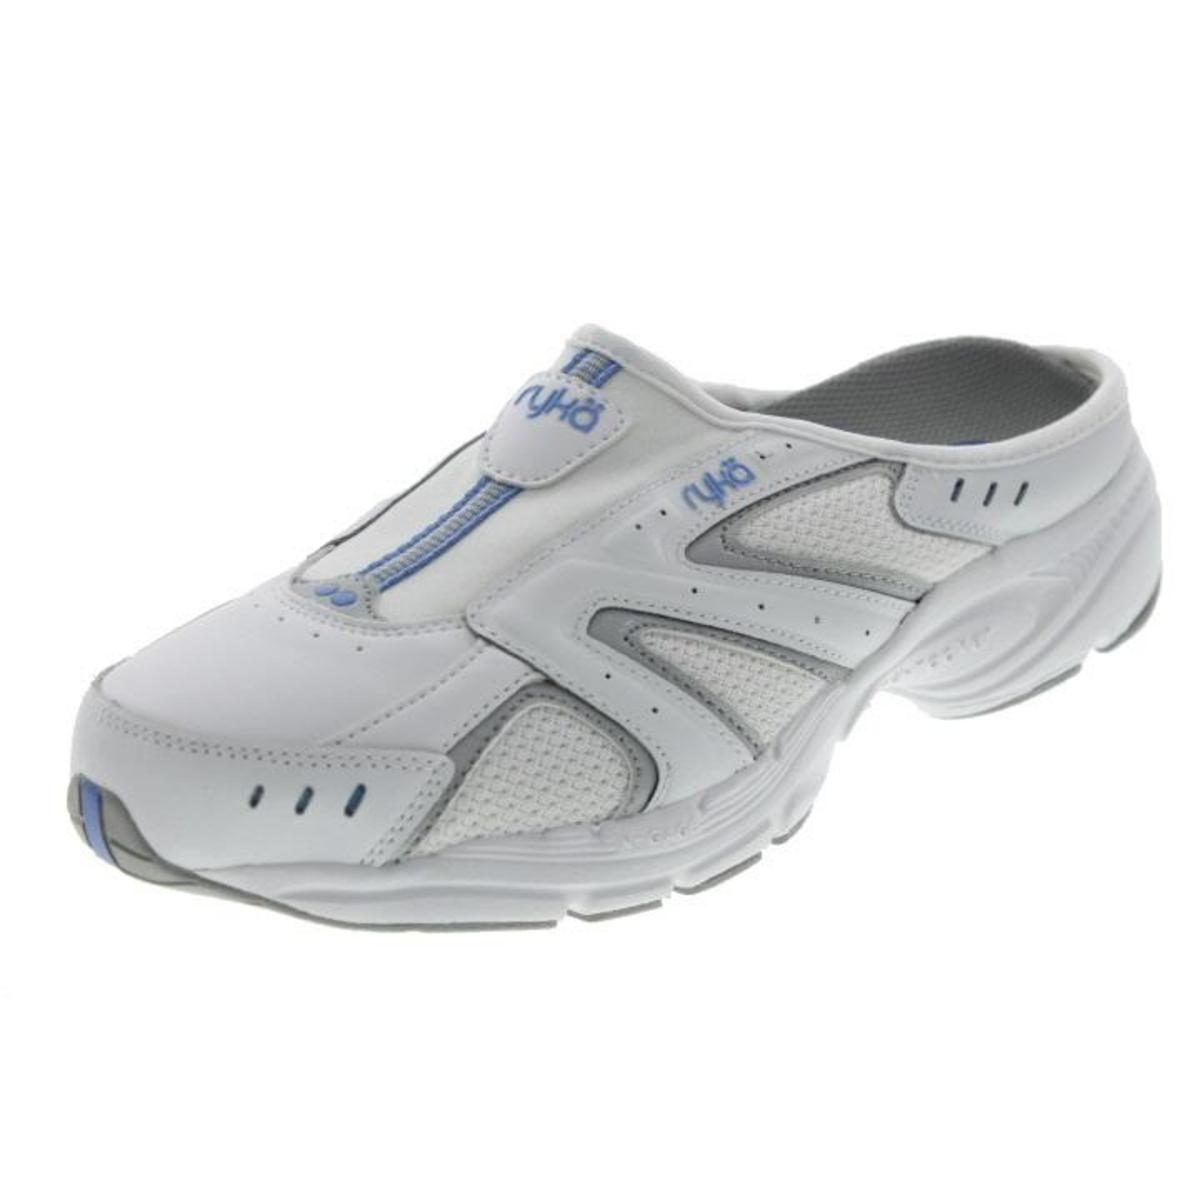 ryka 8070 womens rocker white leather athletic casual